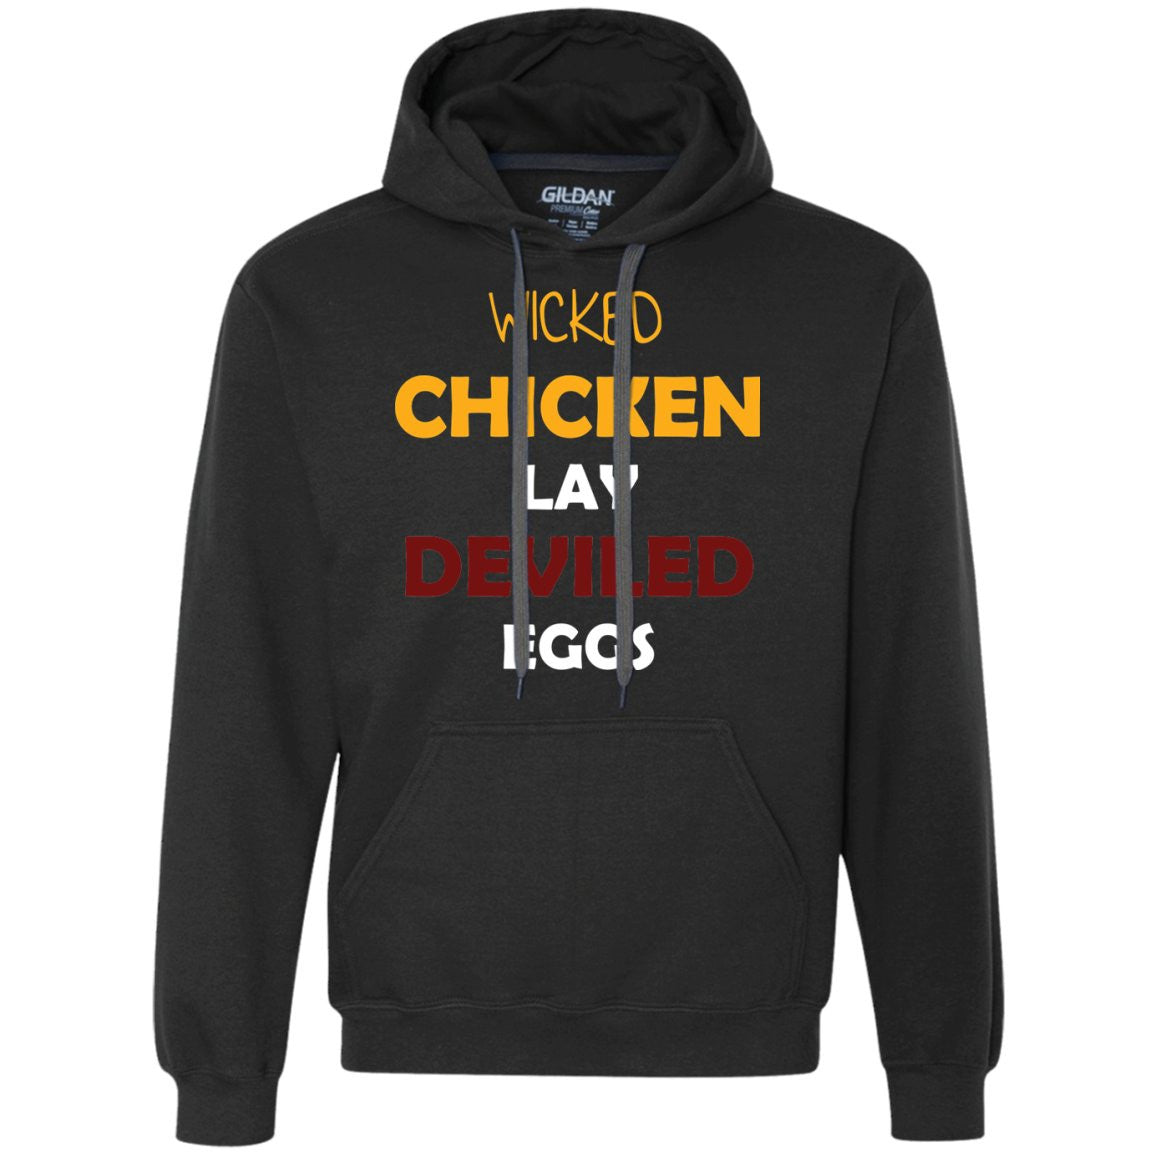 Funny Chicken Gift Shirt - Wicked Chickens  Heavyweight Pullover Fleece Sweatshirt